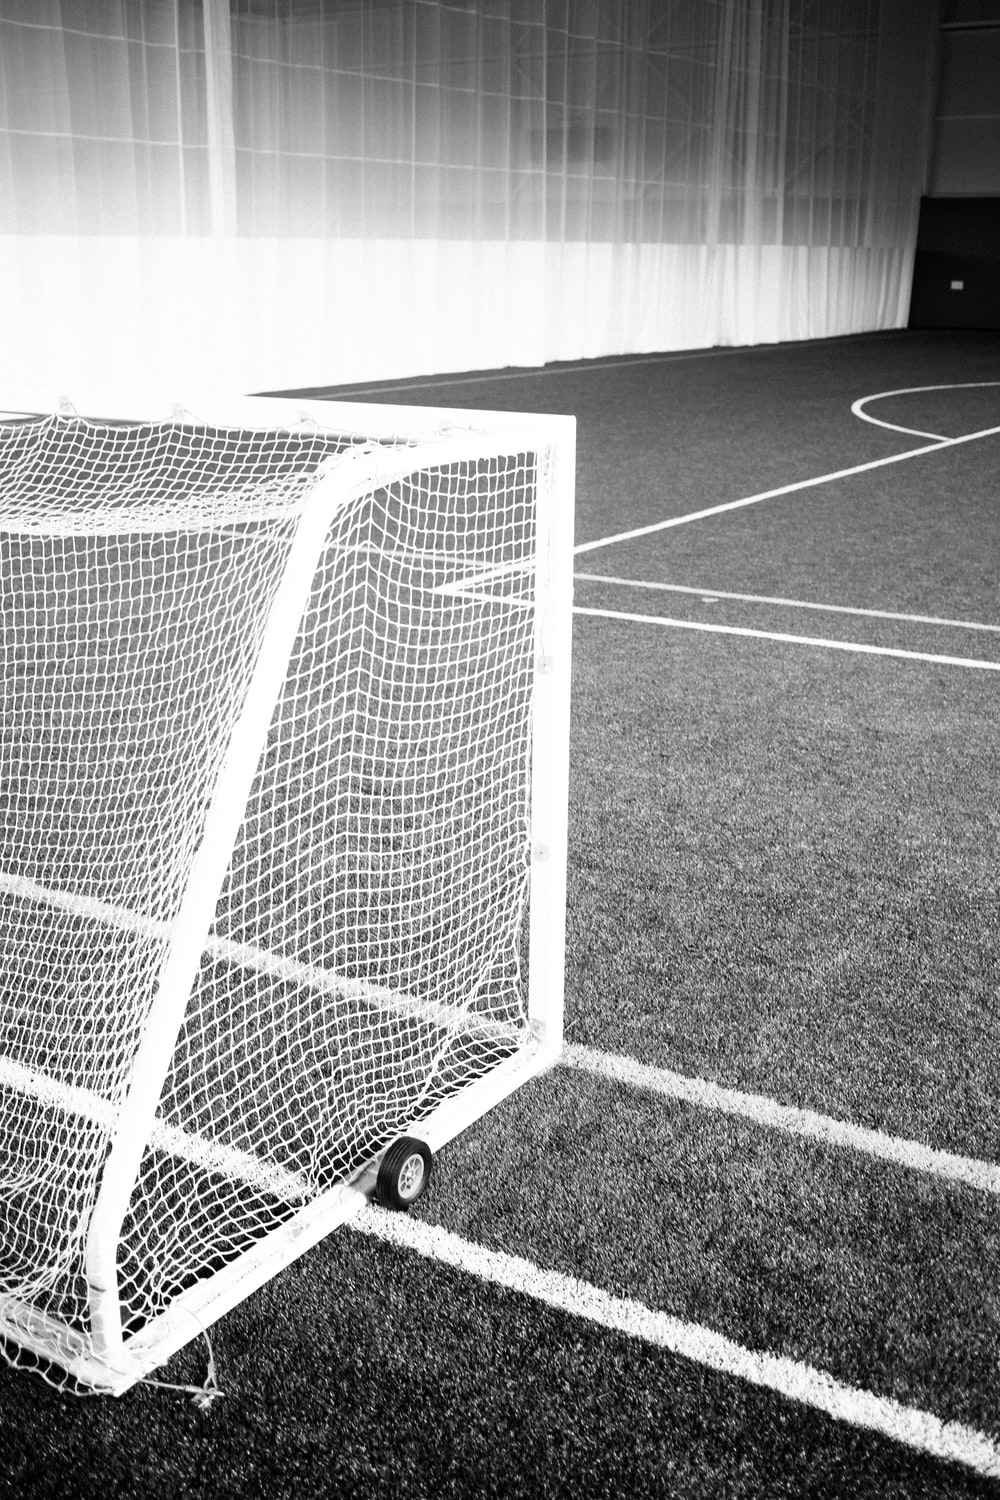 grayscale photography of field net